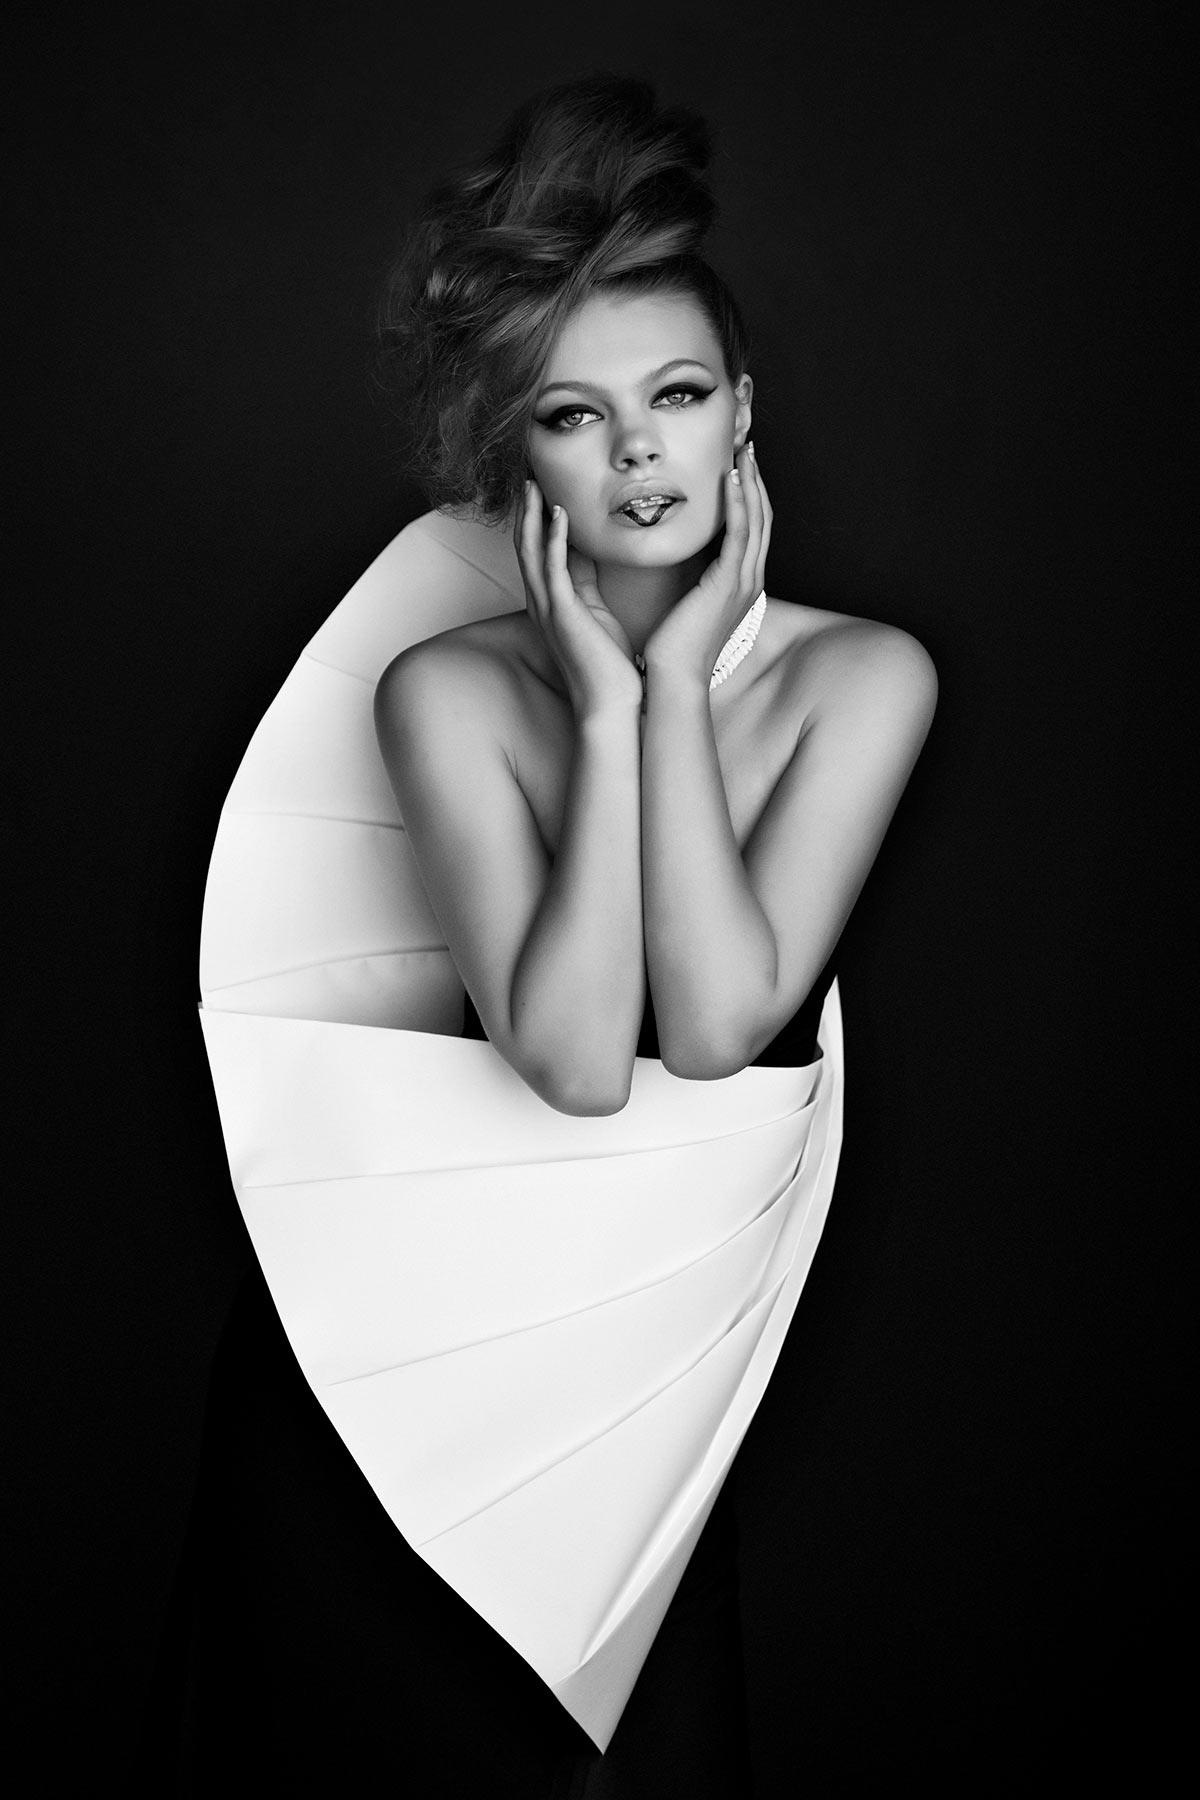 Fashion Photography by Paige Peterson Photography